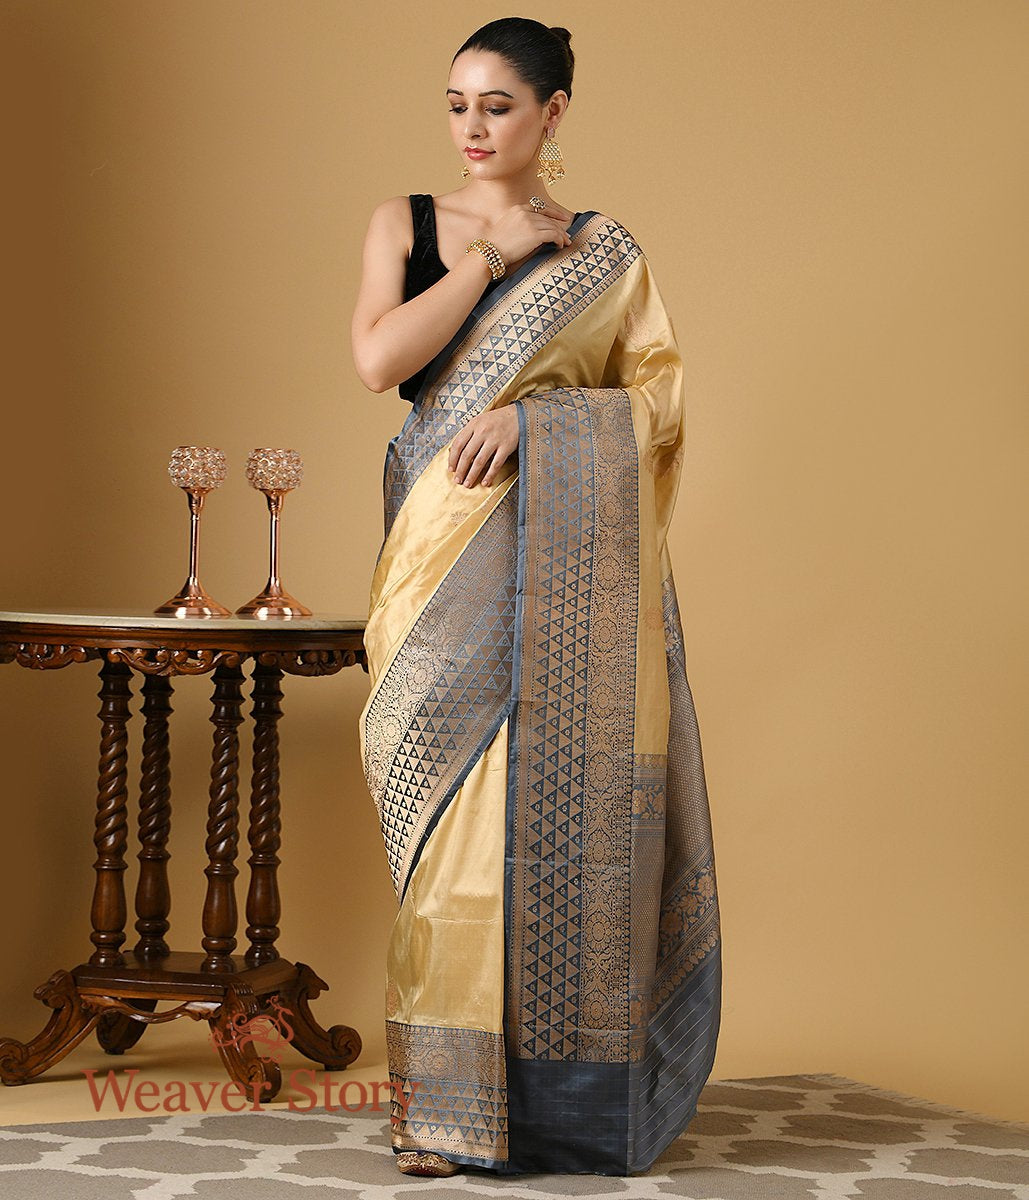 Handwoven Beige Katan Silk Saree with Grey Border and Pallu